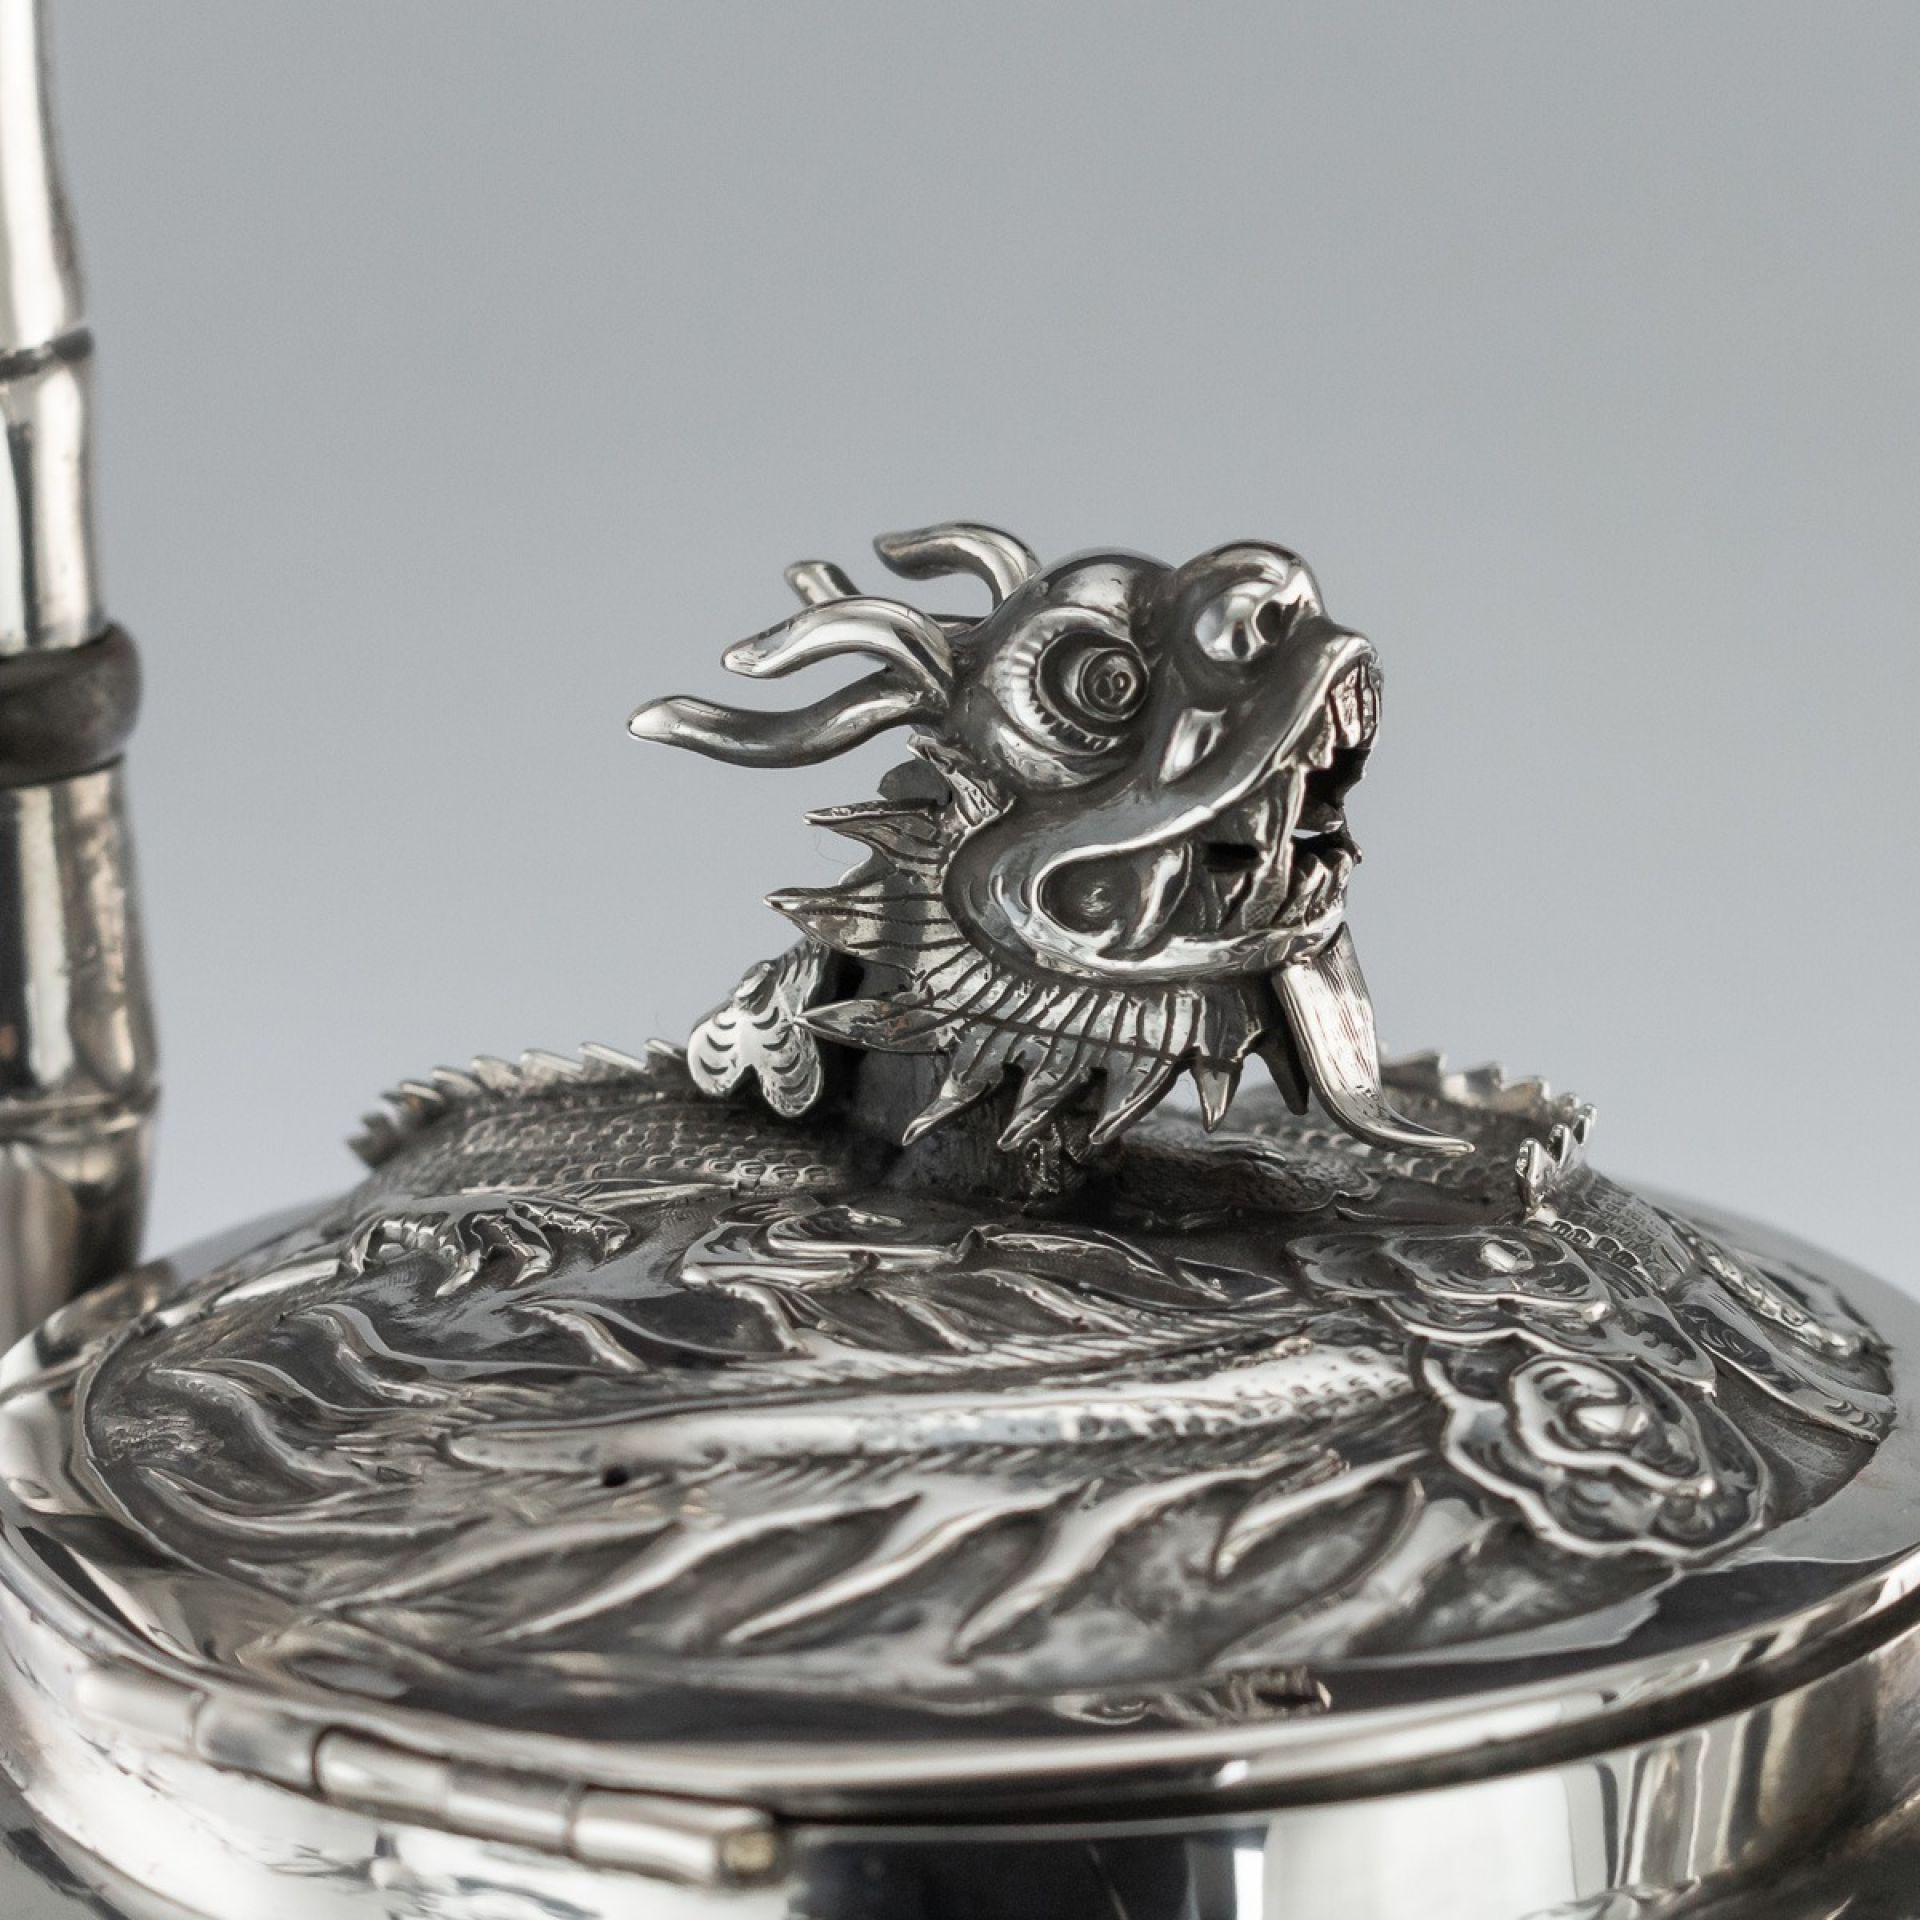 ANTIQUE 19thC CHINESE EXPORT SOLID SILVER KETTLE ON STAND, WANG HING c.1890